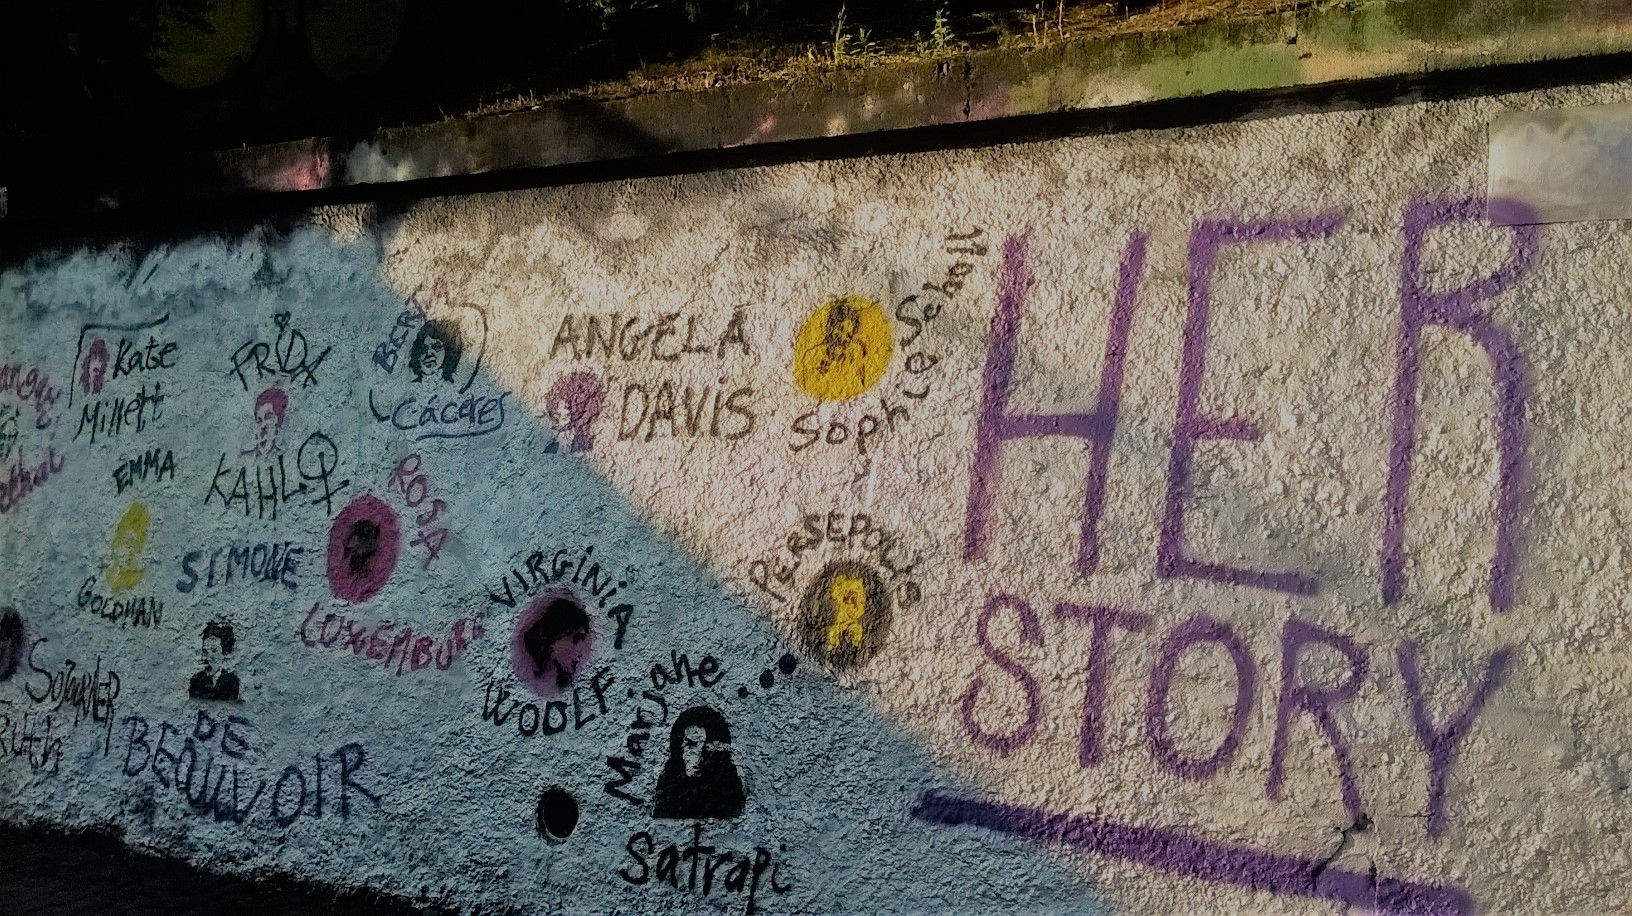 Herstorie - street art displaying inspirational women of different origins. The graffiti was created by a group of women living in Prague that come from different countries. Prague 10.